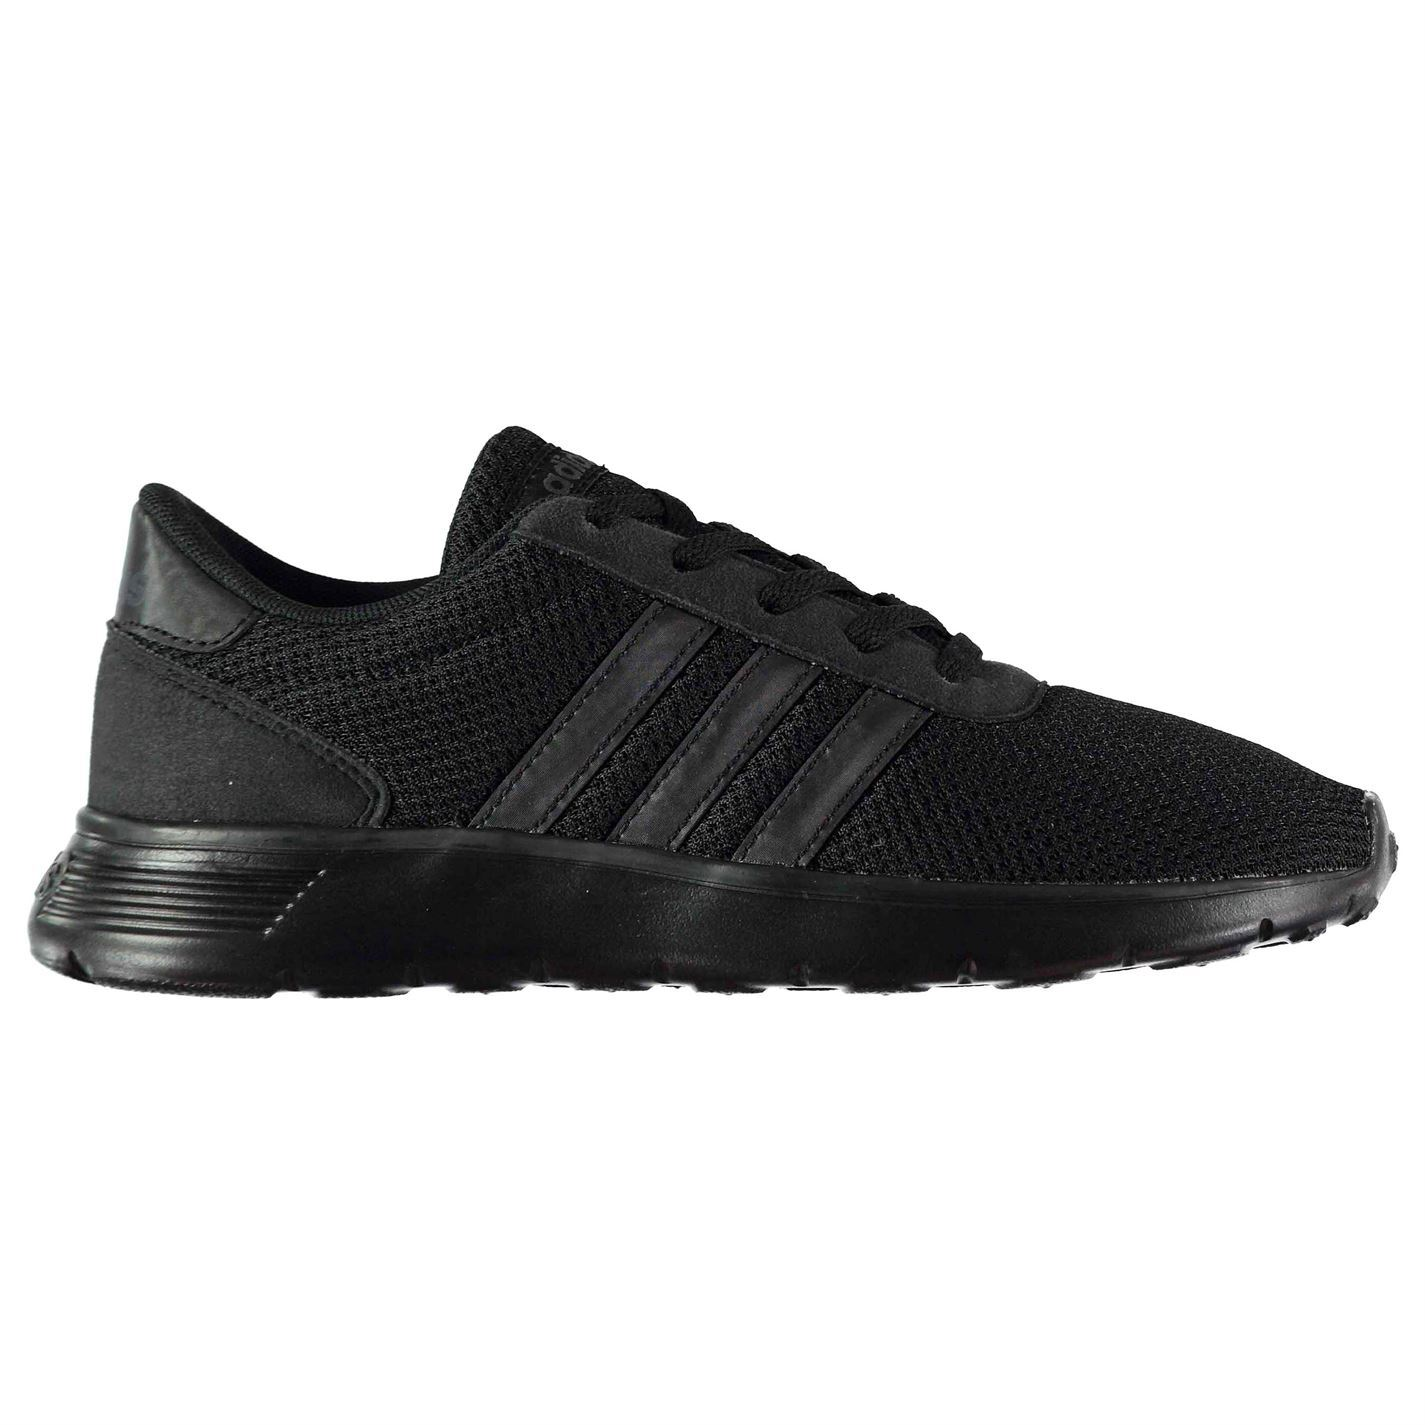 d41f95fe638b adidas Neo Lite Racer Kids Boys Sports Trainer Shoe Black black Bc0073 13  UK 13. About this product. Picture 1 of 2  Picture 2 of 2